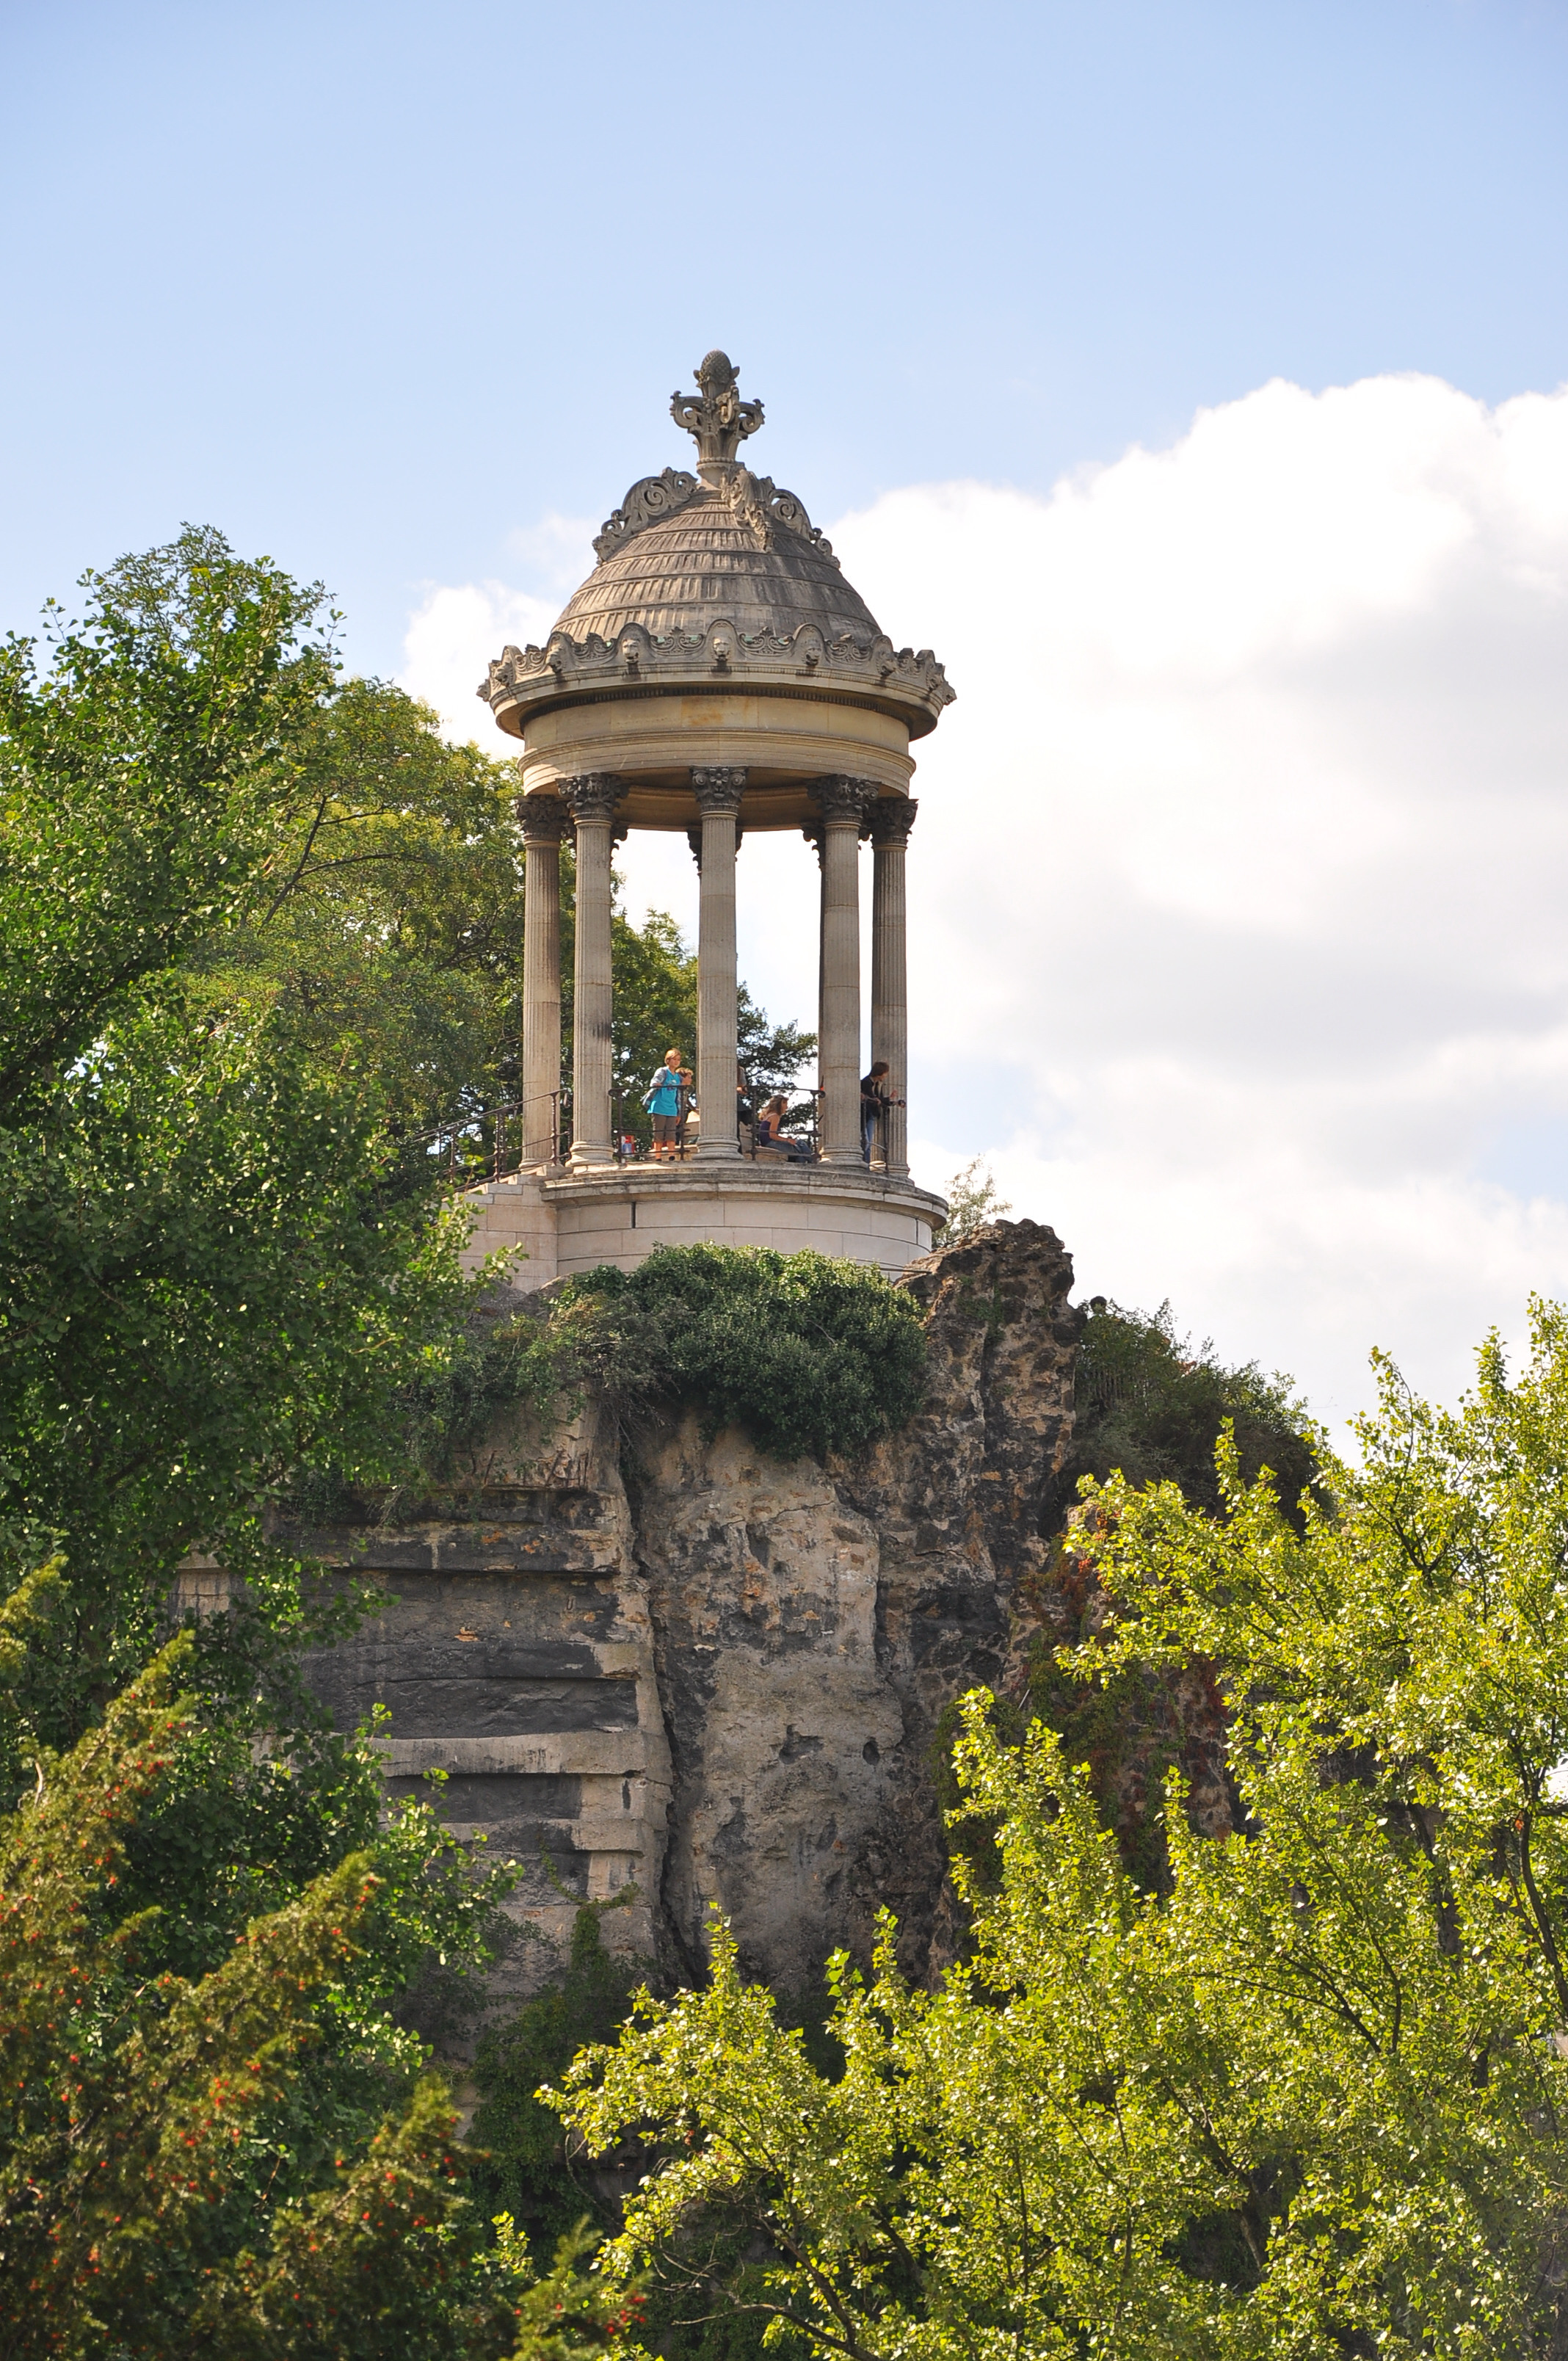 https://upload.wikimedia.org/wikipedia/commons/9/93/Temple_of_Sibylle_Buttes_Chaumont_Paris_19e.jpg